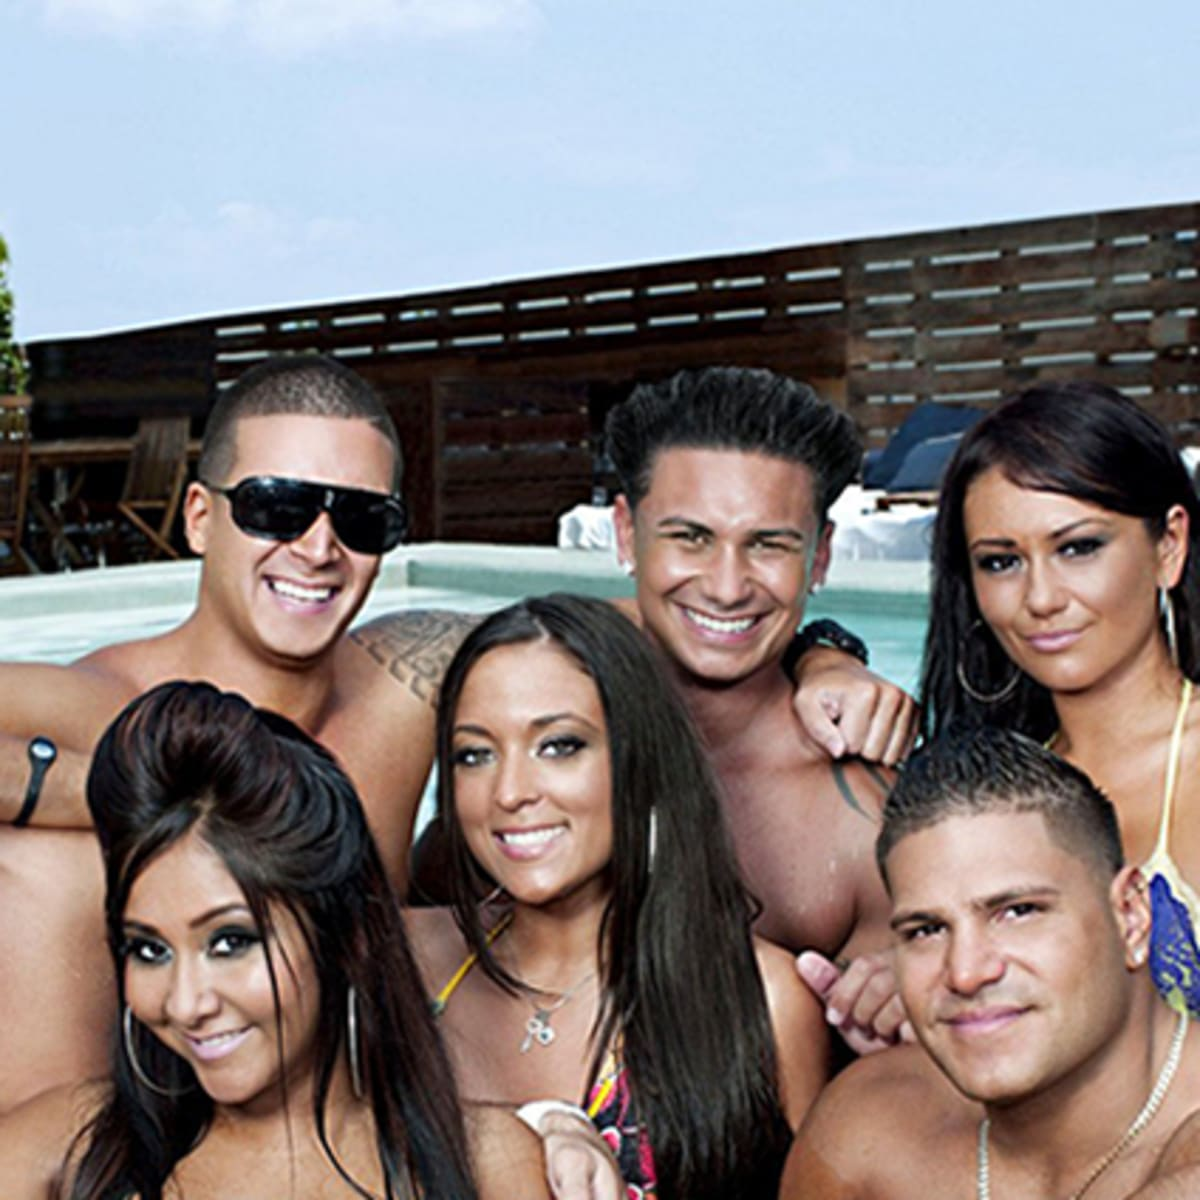 jersey shore people's full names